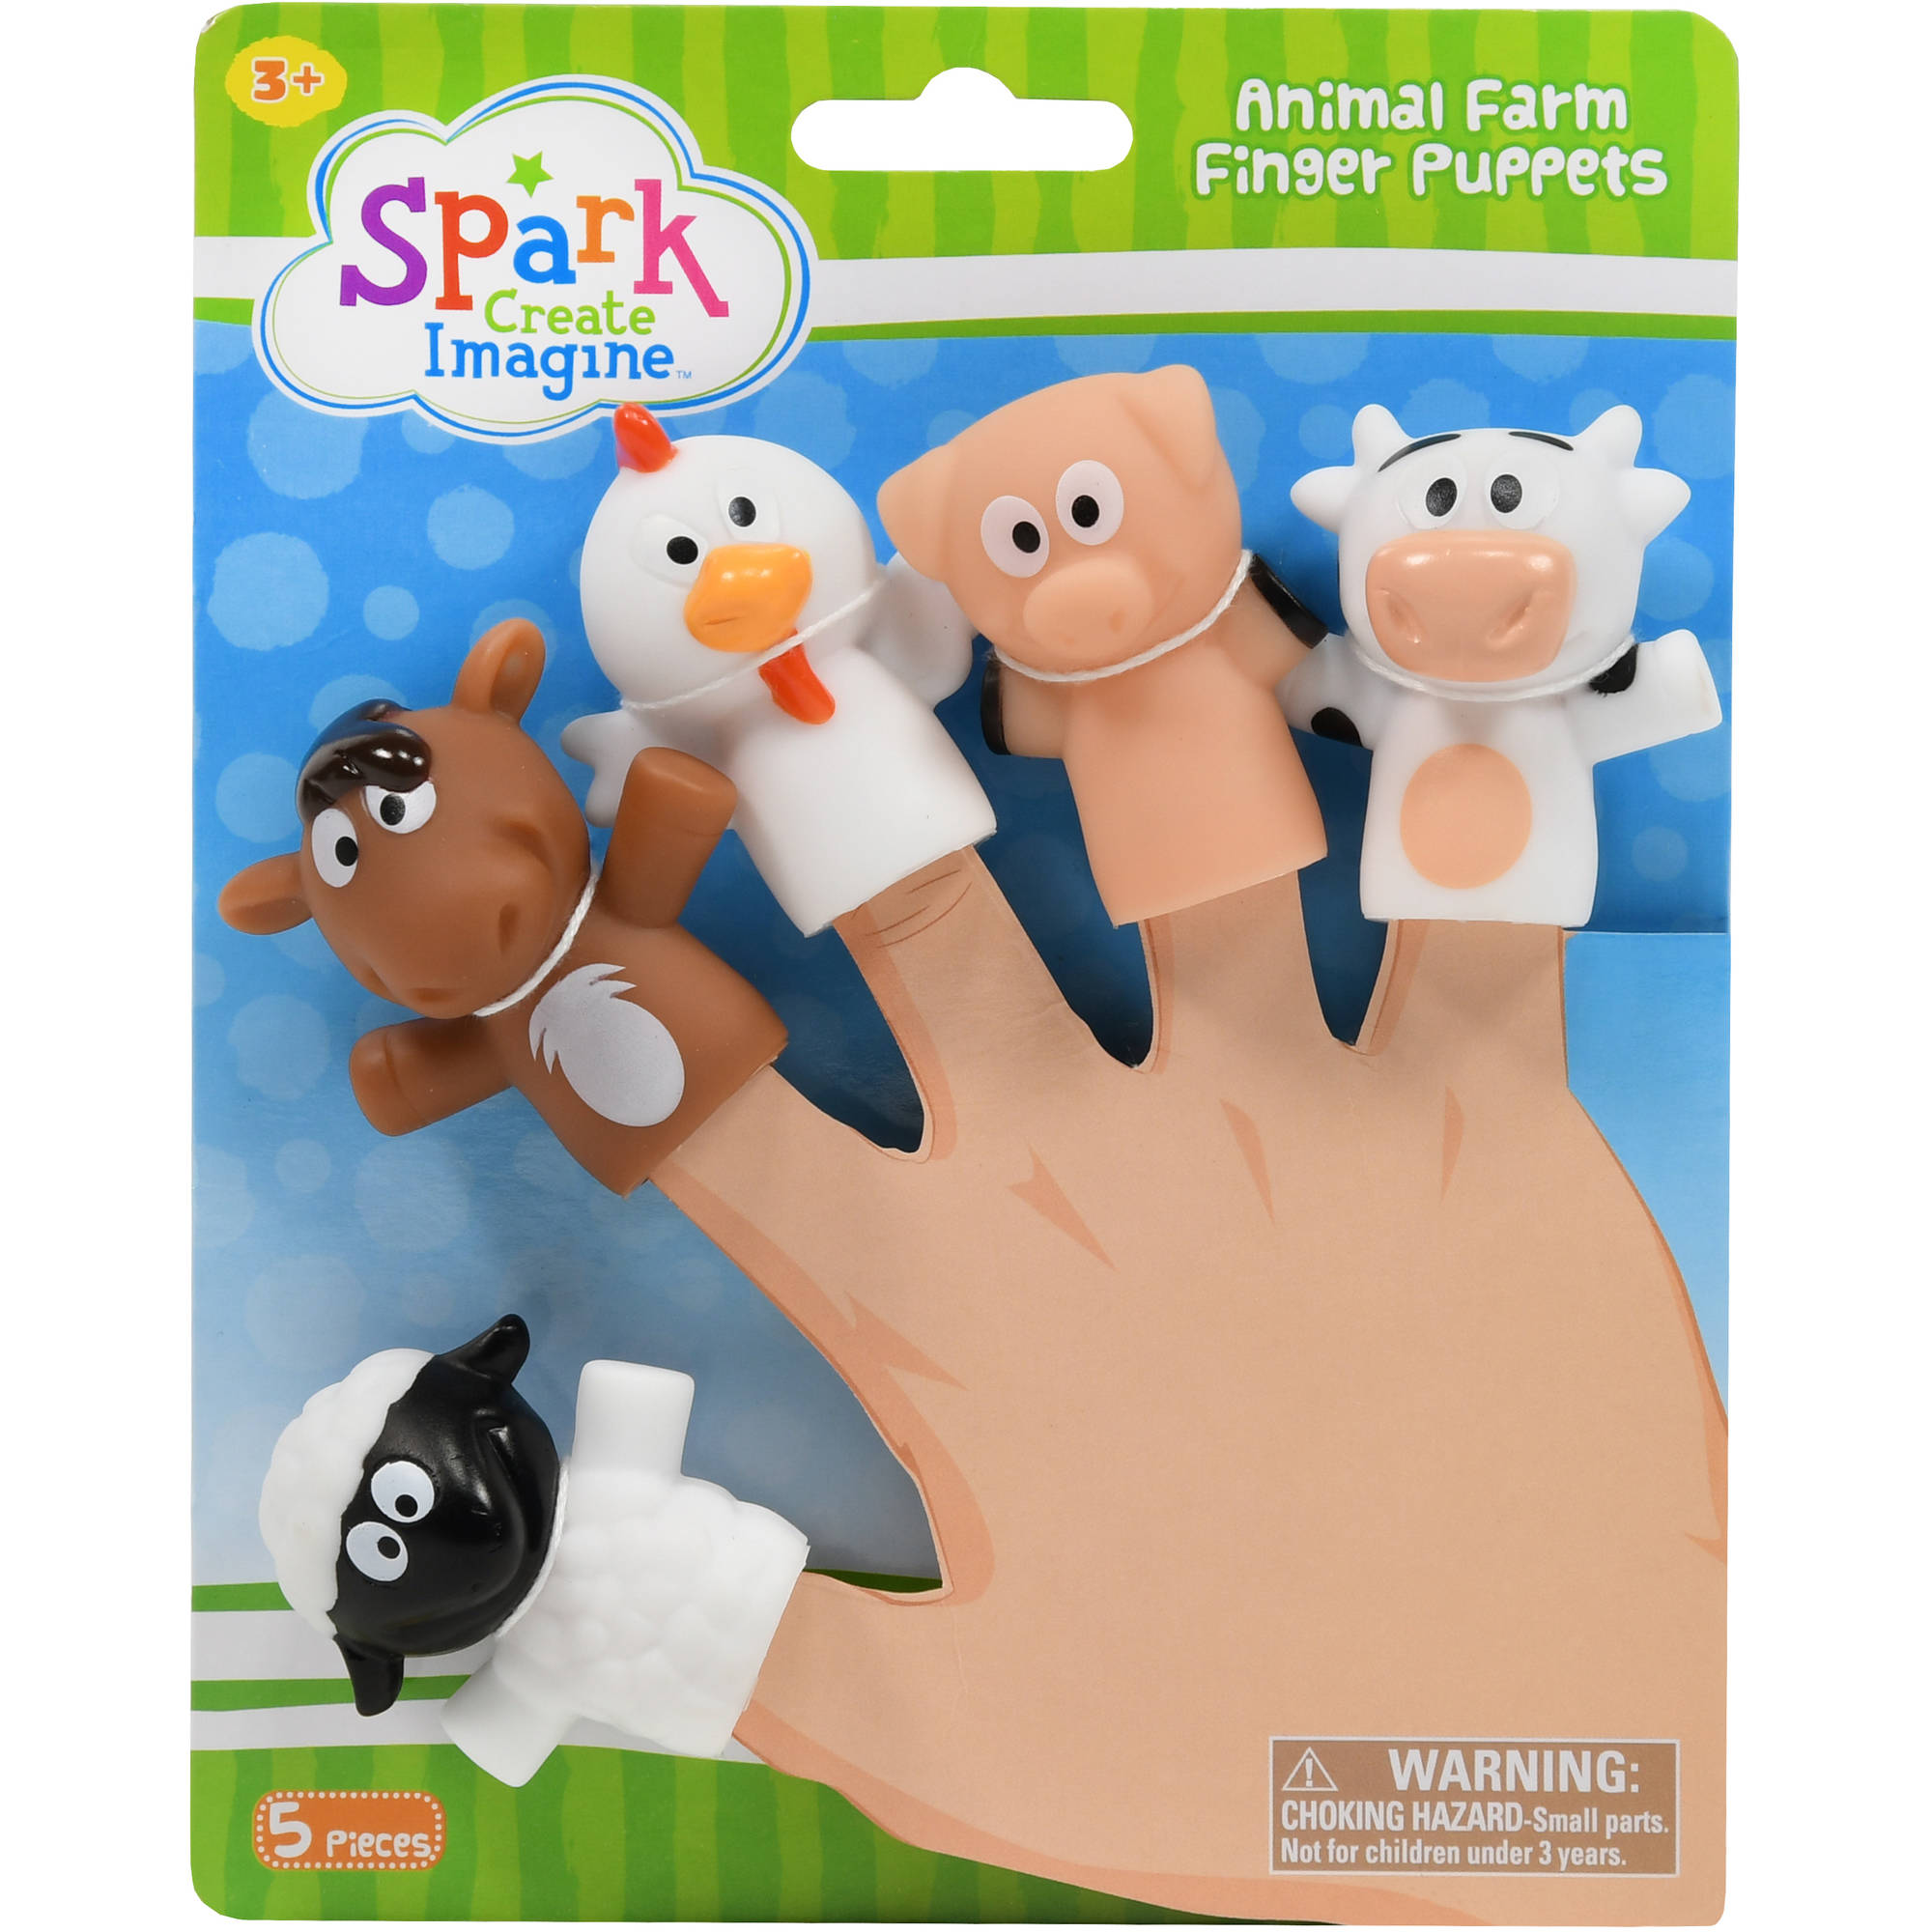 Spark Create IMagine Animal Farm Finger Puppets, 5 Pieces by Wal-Mart Stores, Inc.